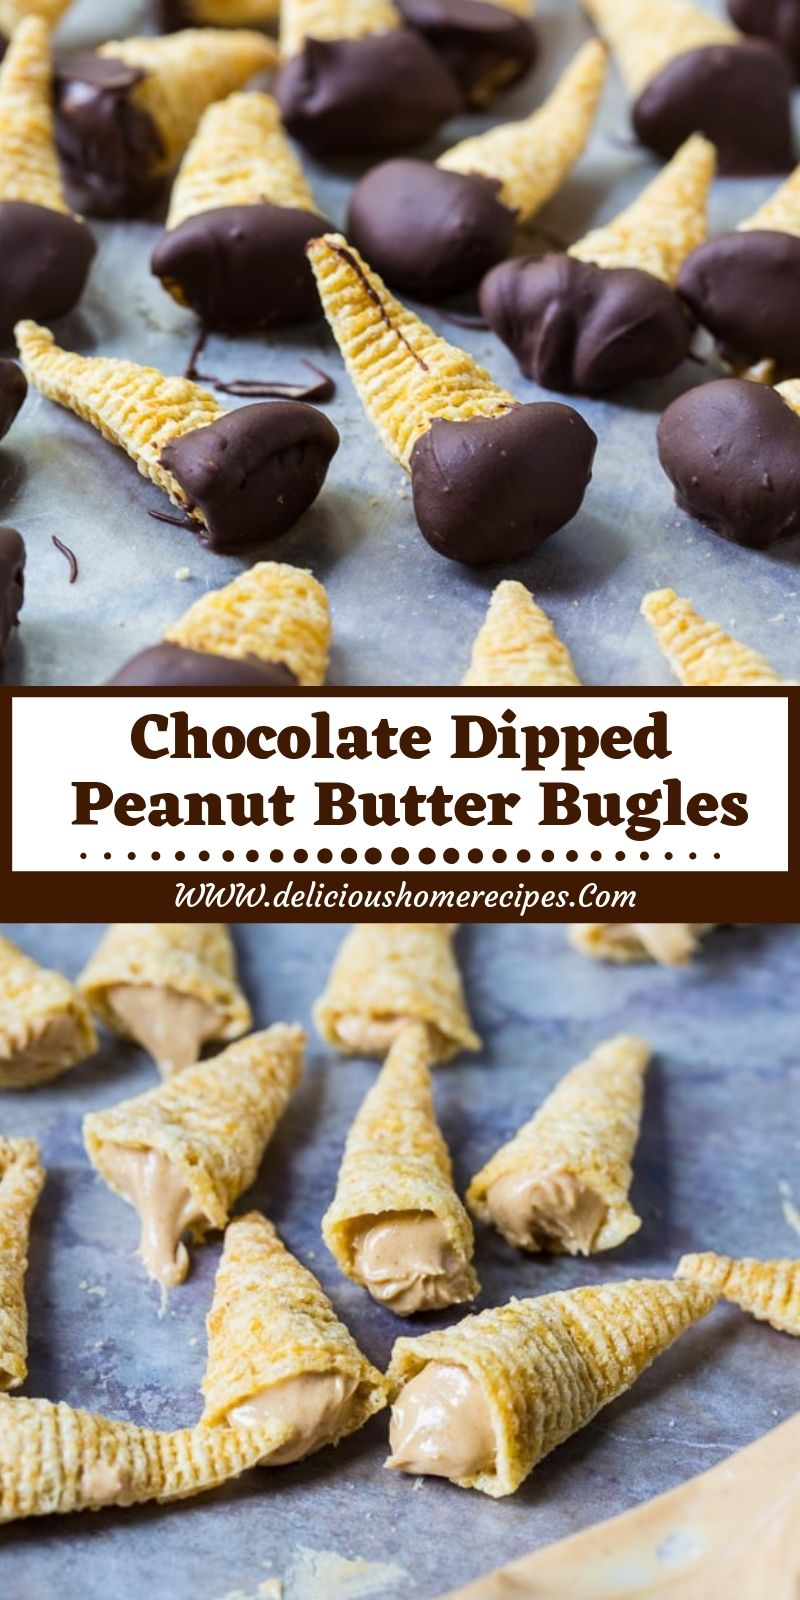 Chocolate Dipped Peanut Butter Bugles images